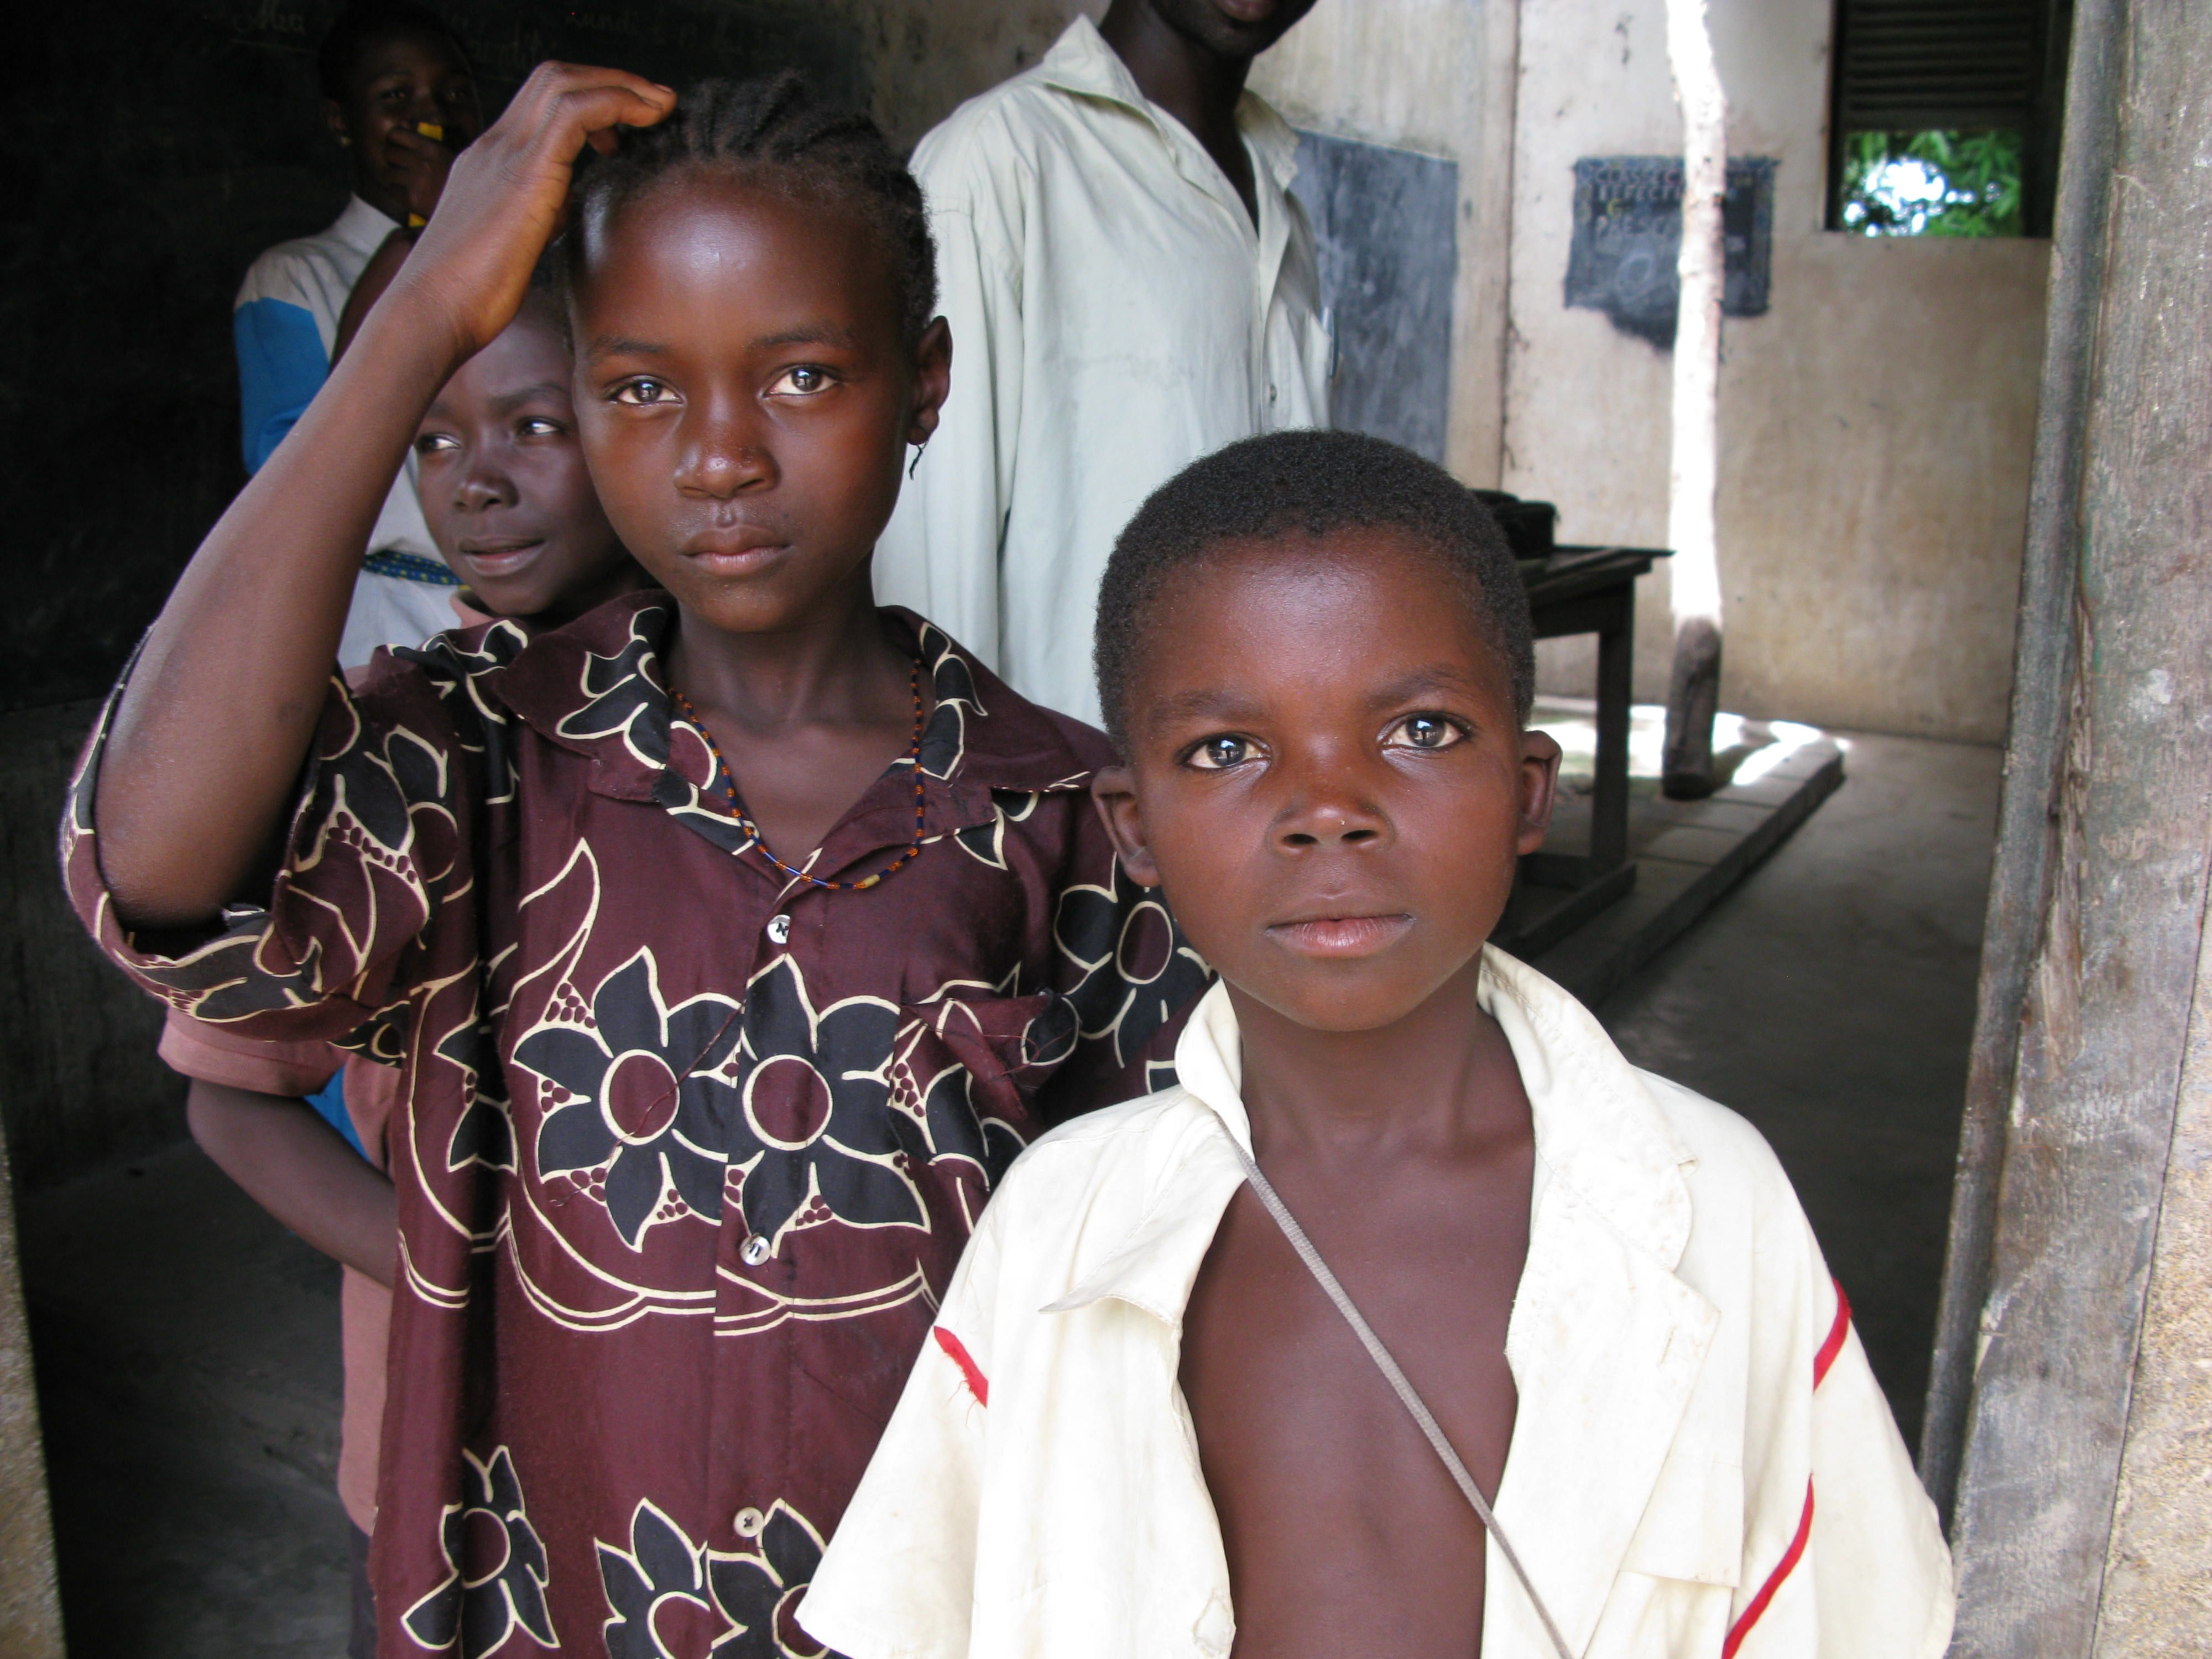 Boys in the Central African Republic.